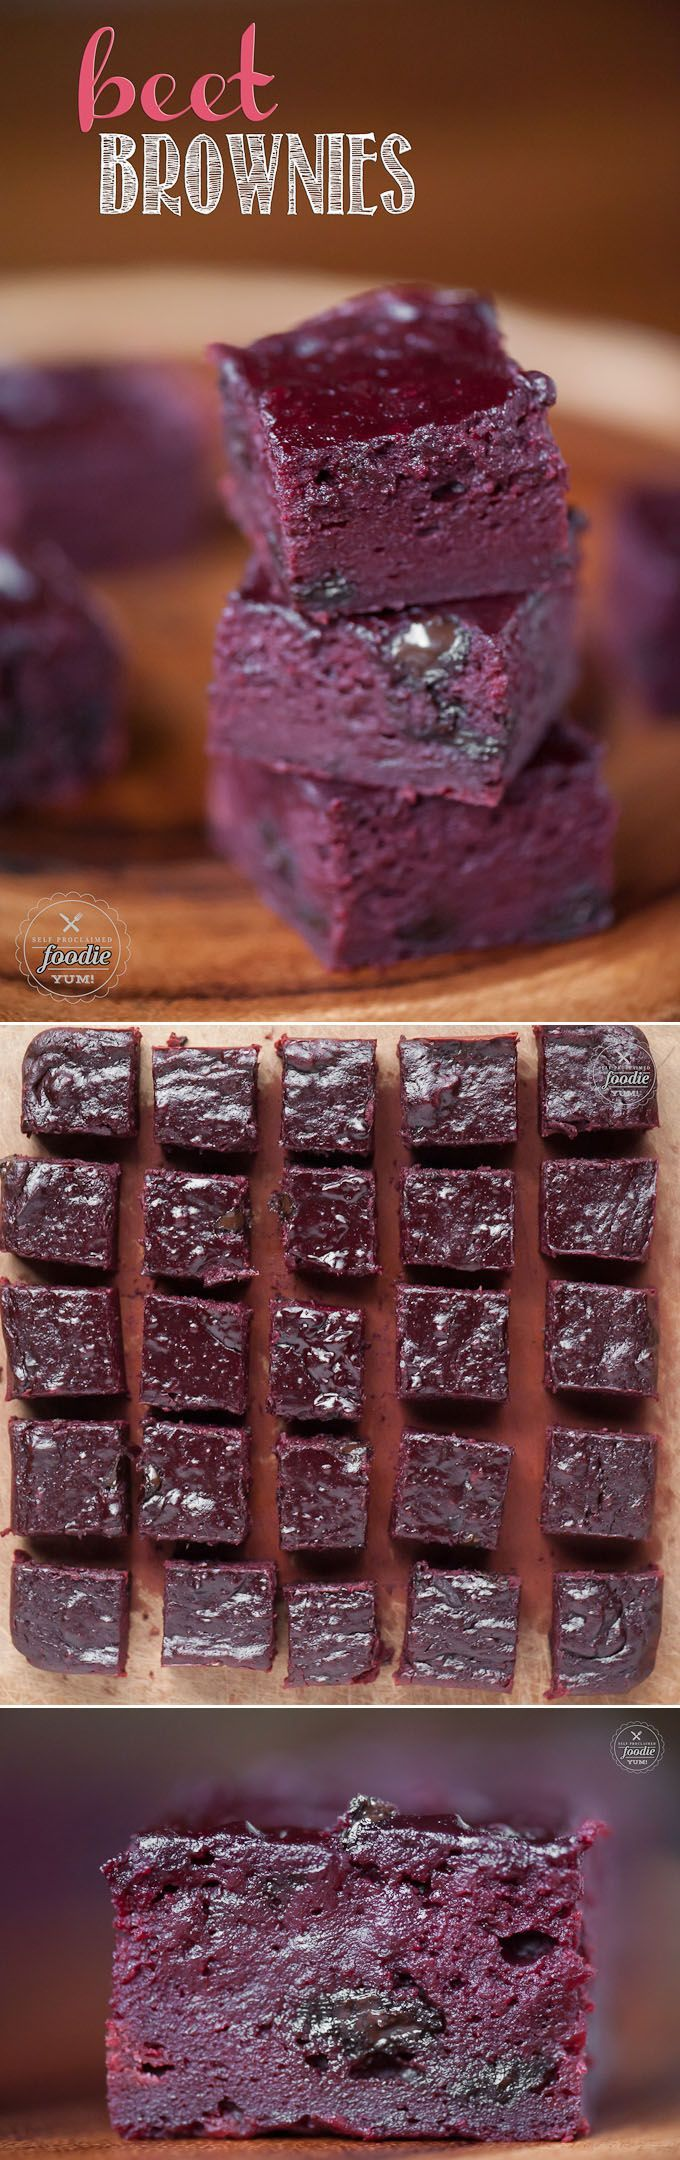 Beet Brownies are made with my decadent brown butter brownie recipe and have a buttermilk beet puree mixed in to yield a lusciously soft red velvet brownie.